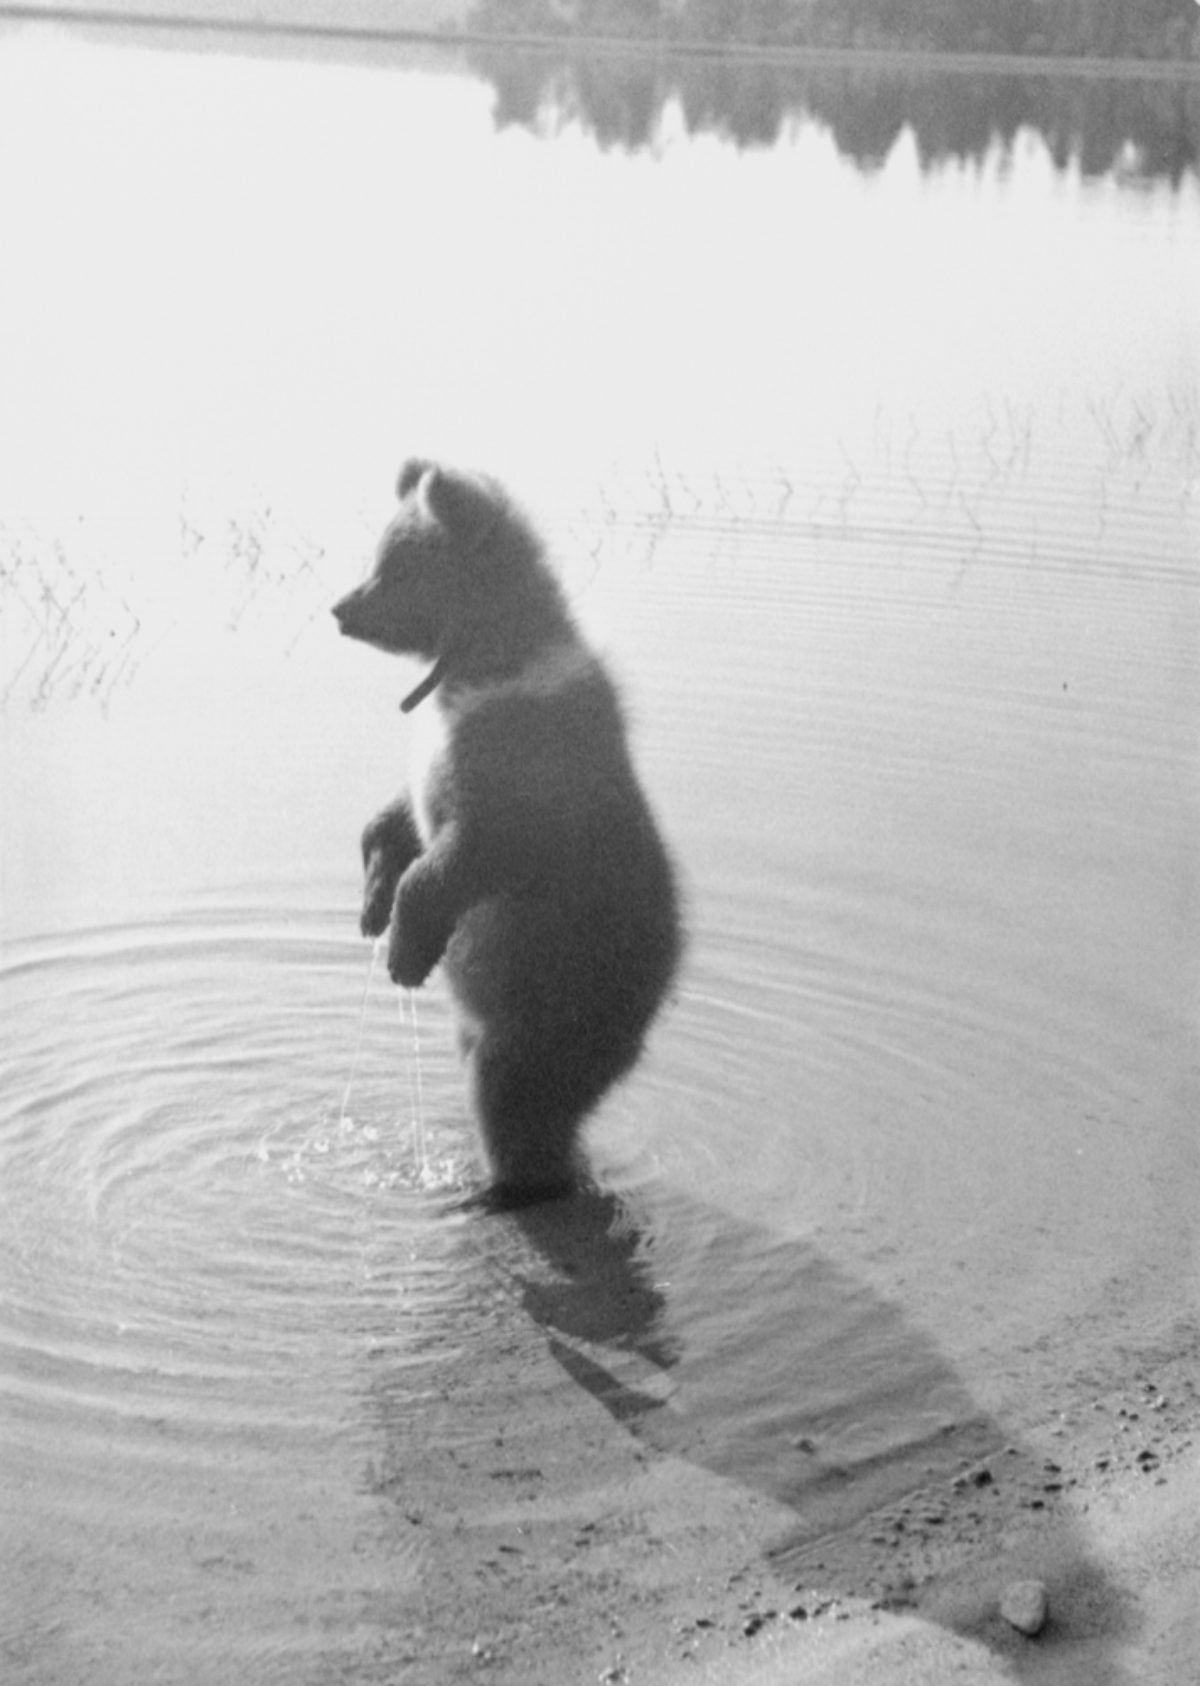 Mesikkä having a morning bath at lake Novika in 1944. Photo: Pauli Jänis / Picture Collections of the Finnish Heritage Agency